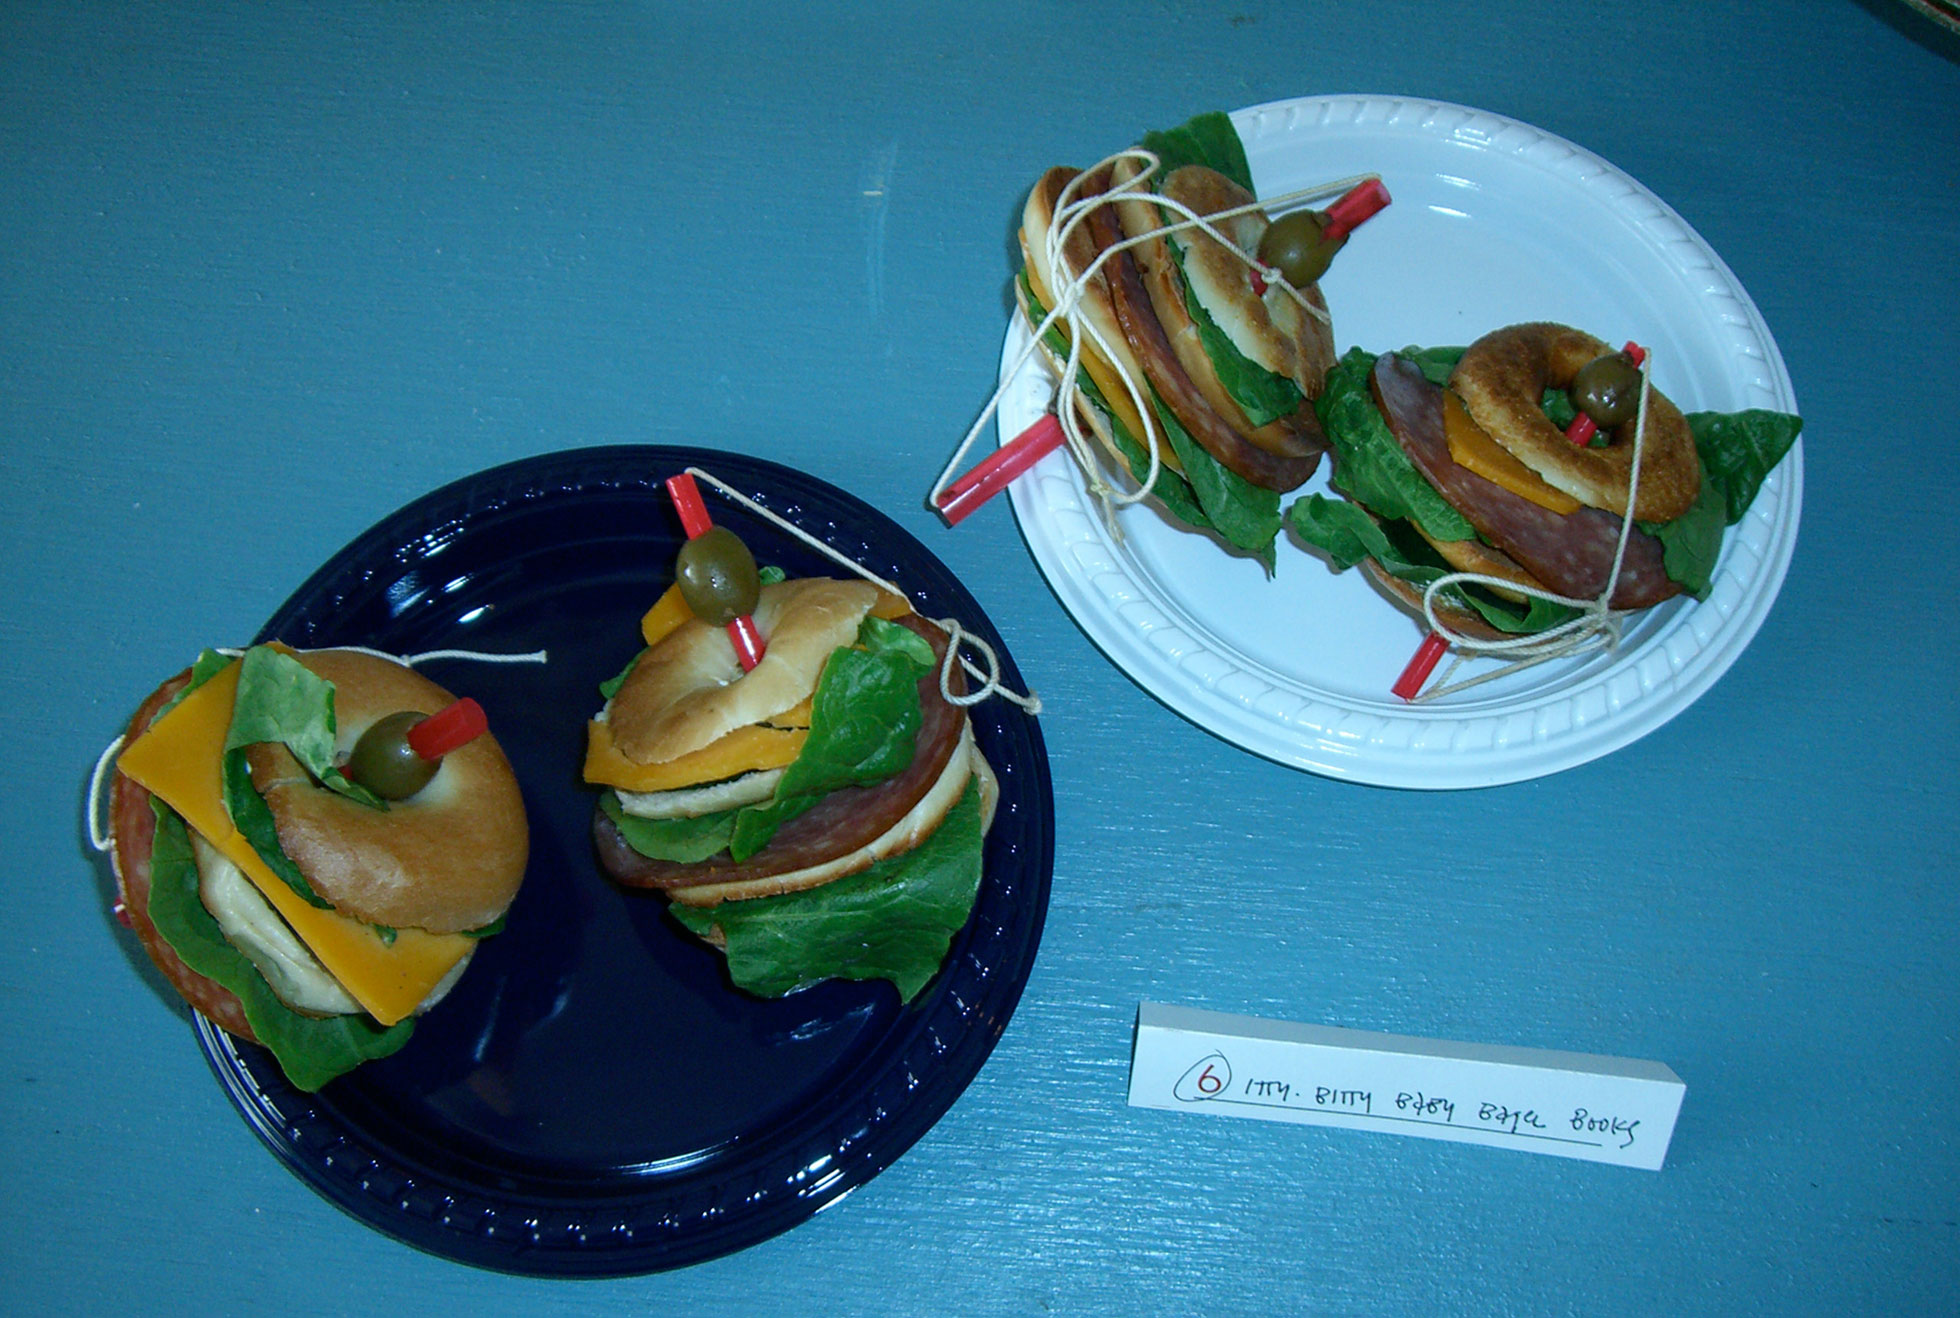 """""""Itty-Bitty Baby Bagel Books"""" by Eve Reid; 2006 Edible Book Festival entry"""